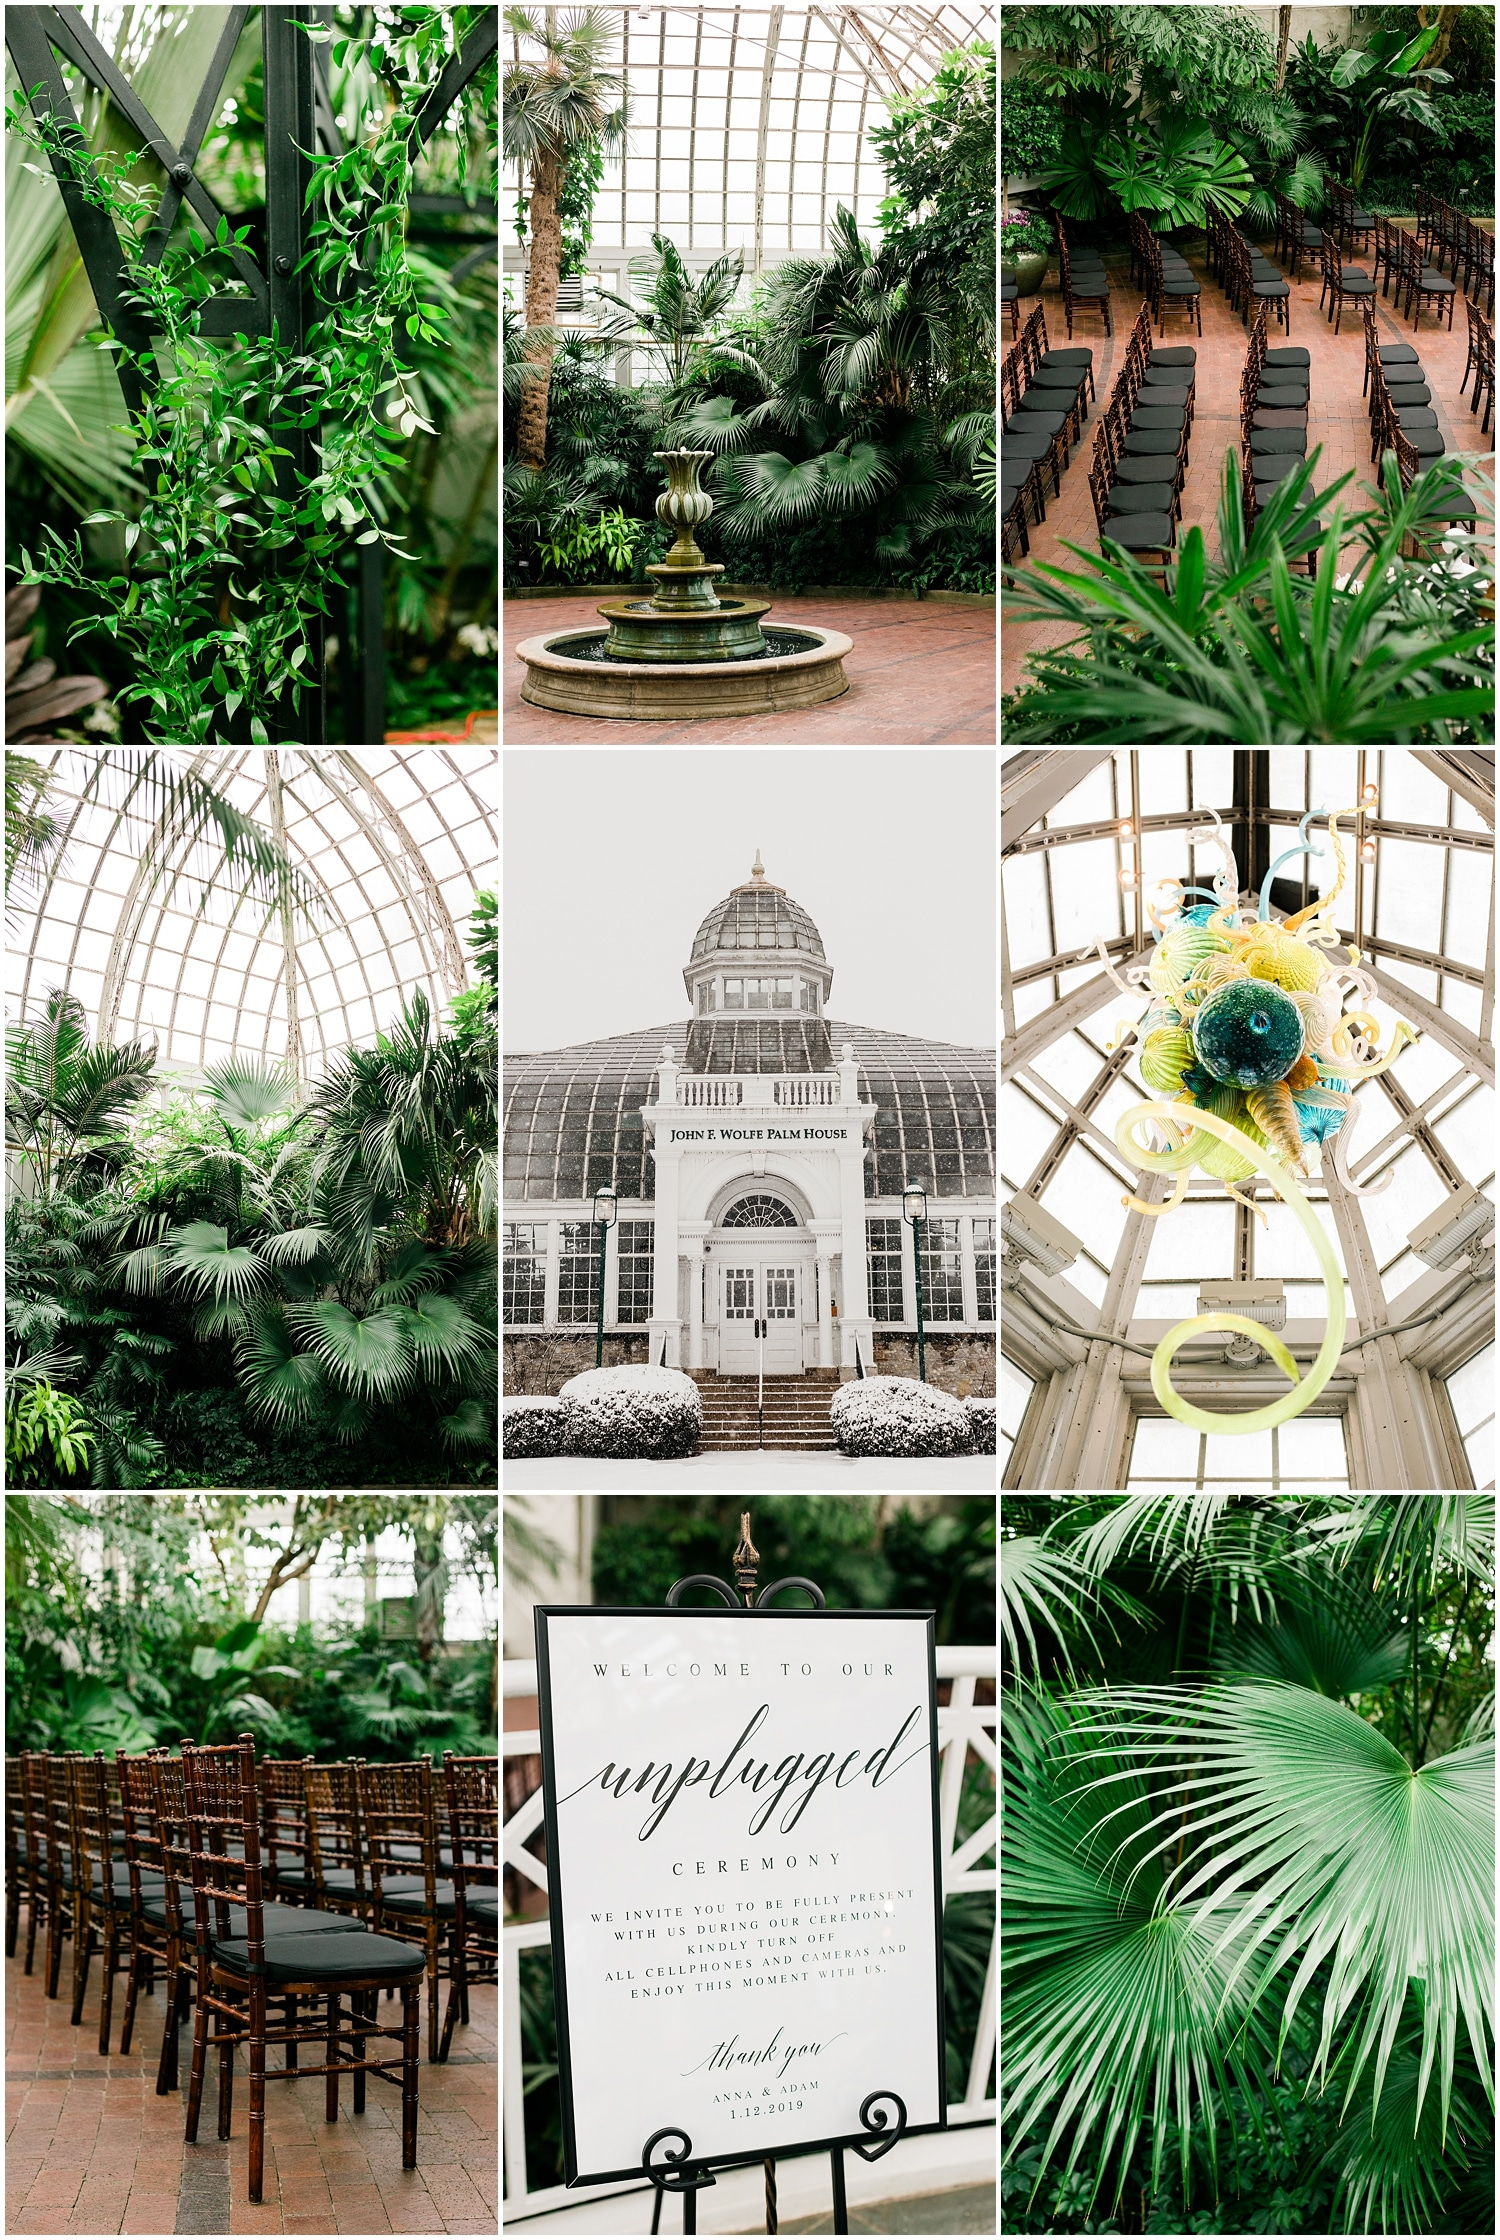 adam lowe photography, wedding, style, love, franklin park conservatory, FPC, columbus, ohio, winter wedding, madison house floral, ivy bridal studio, the black tux,guilded social, jenny yoo, victorias secret,hayley paige, justine m couture, jimmy choo, tiffany and co, james allen